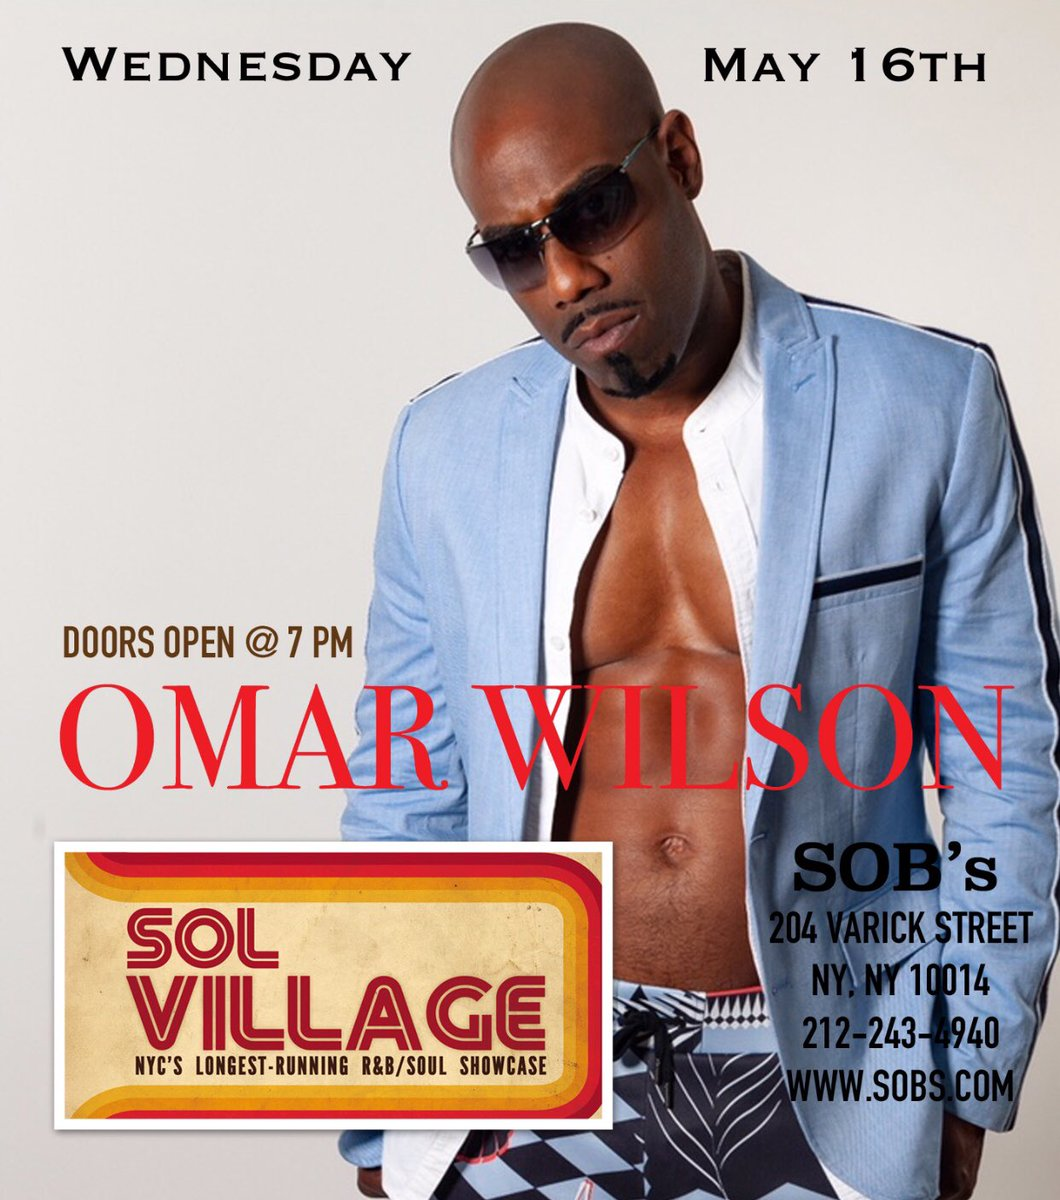 Wednesday MAY 16th! at SOB's @SOBs #NYC Doors Open @ 7pm #RnB #Soul Singer OMAR WILSON @omarwilson🔥🔥 Its Gonna Be an Epic Performance!! #NYC #clubbing #socialmedia #Music #Media #Mediabuzz